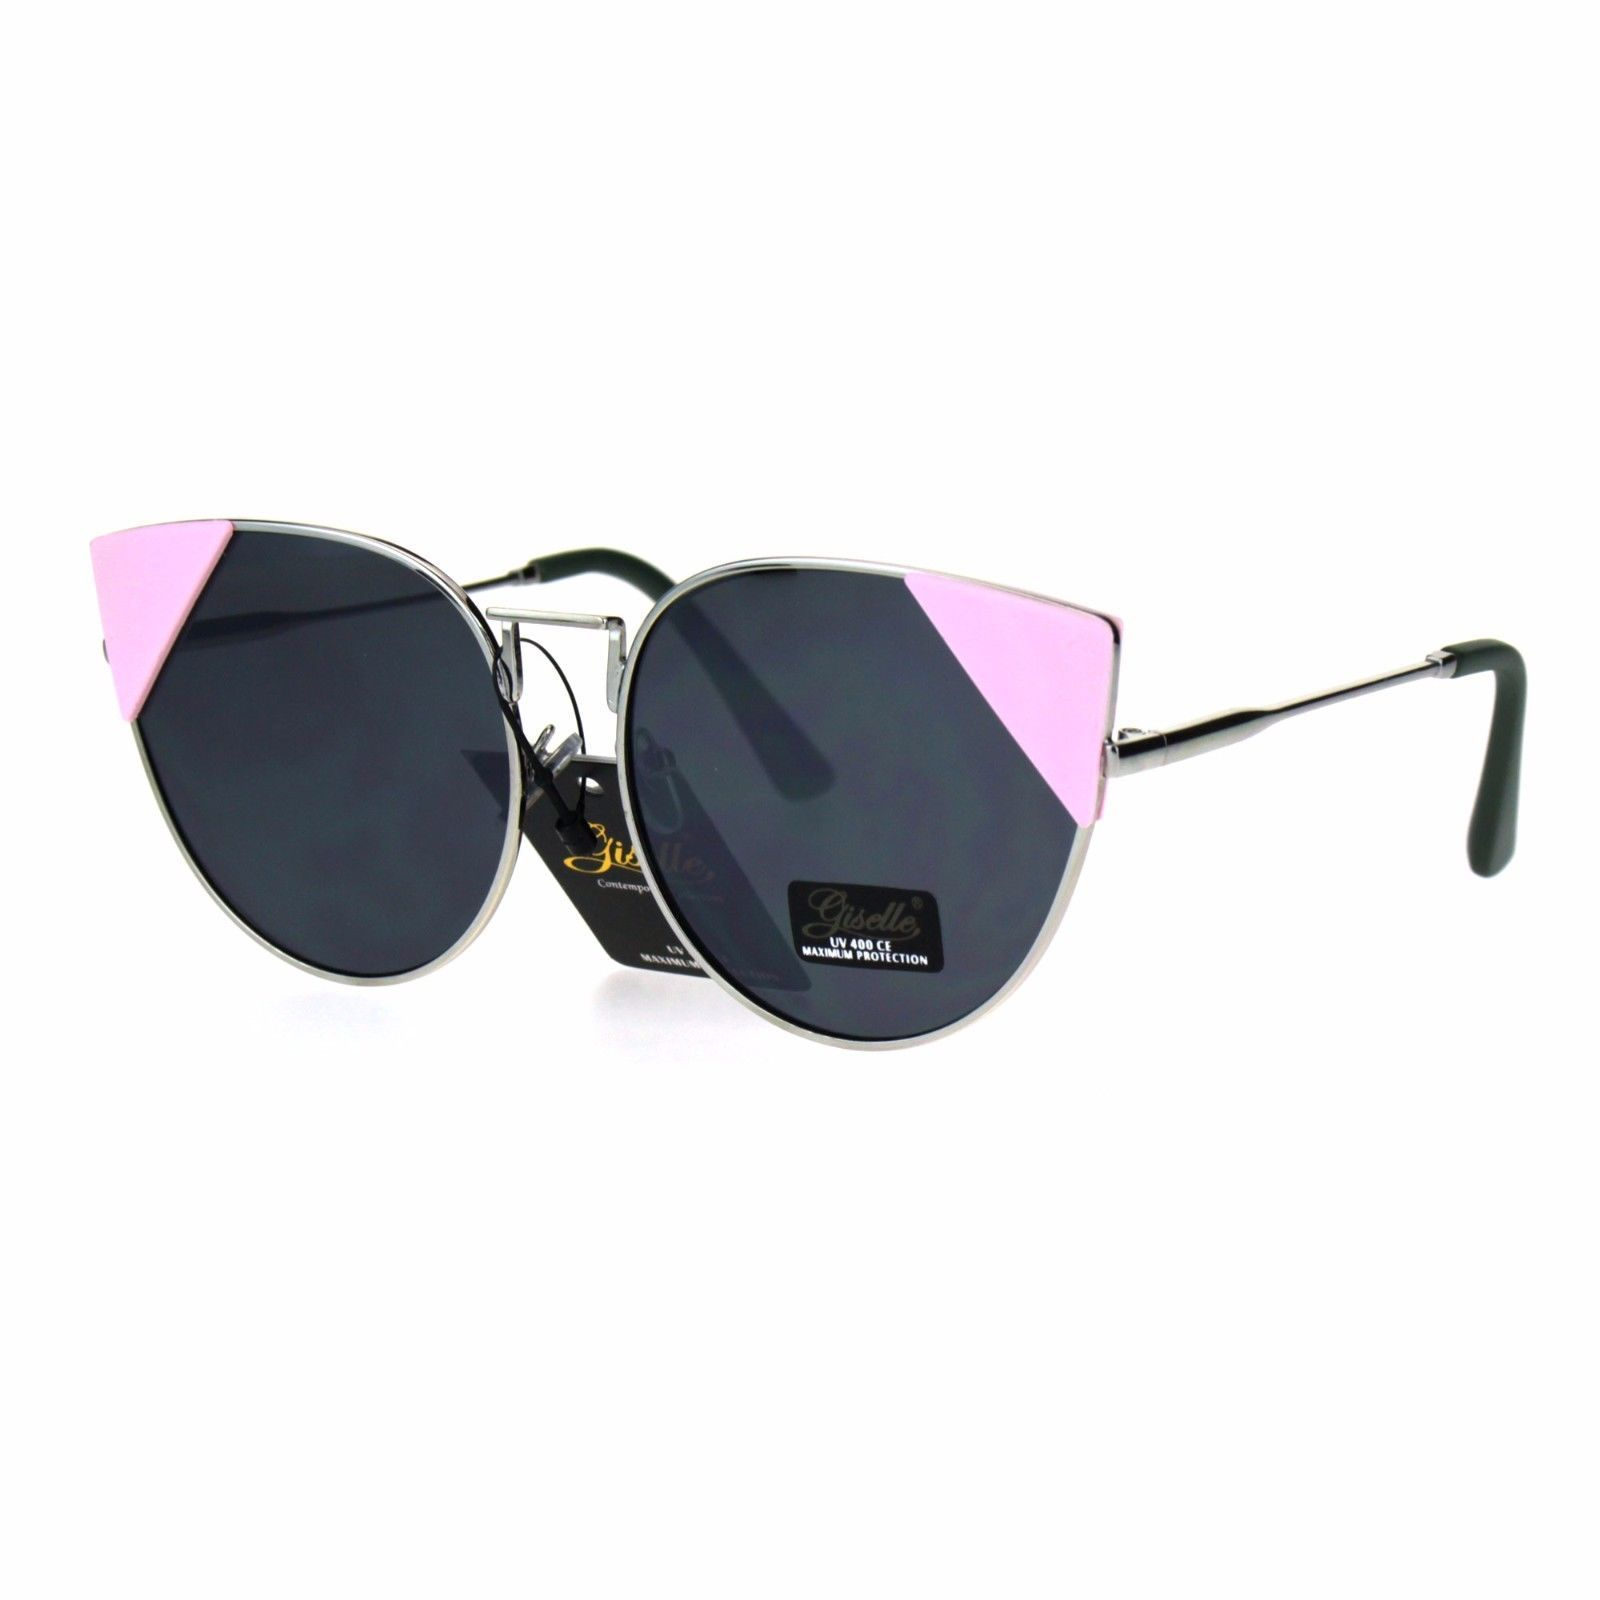 Womens Sunglasses Triangle Corner Color Block Cateye Fashion Shades